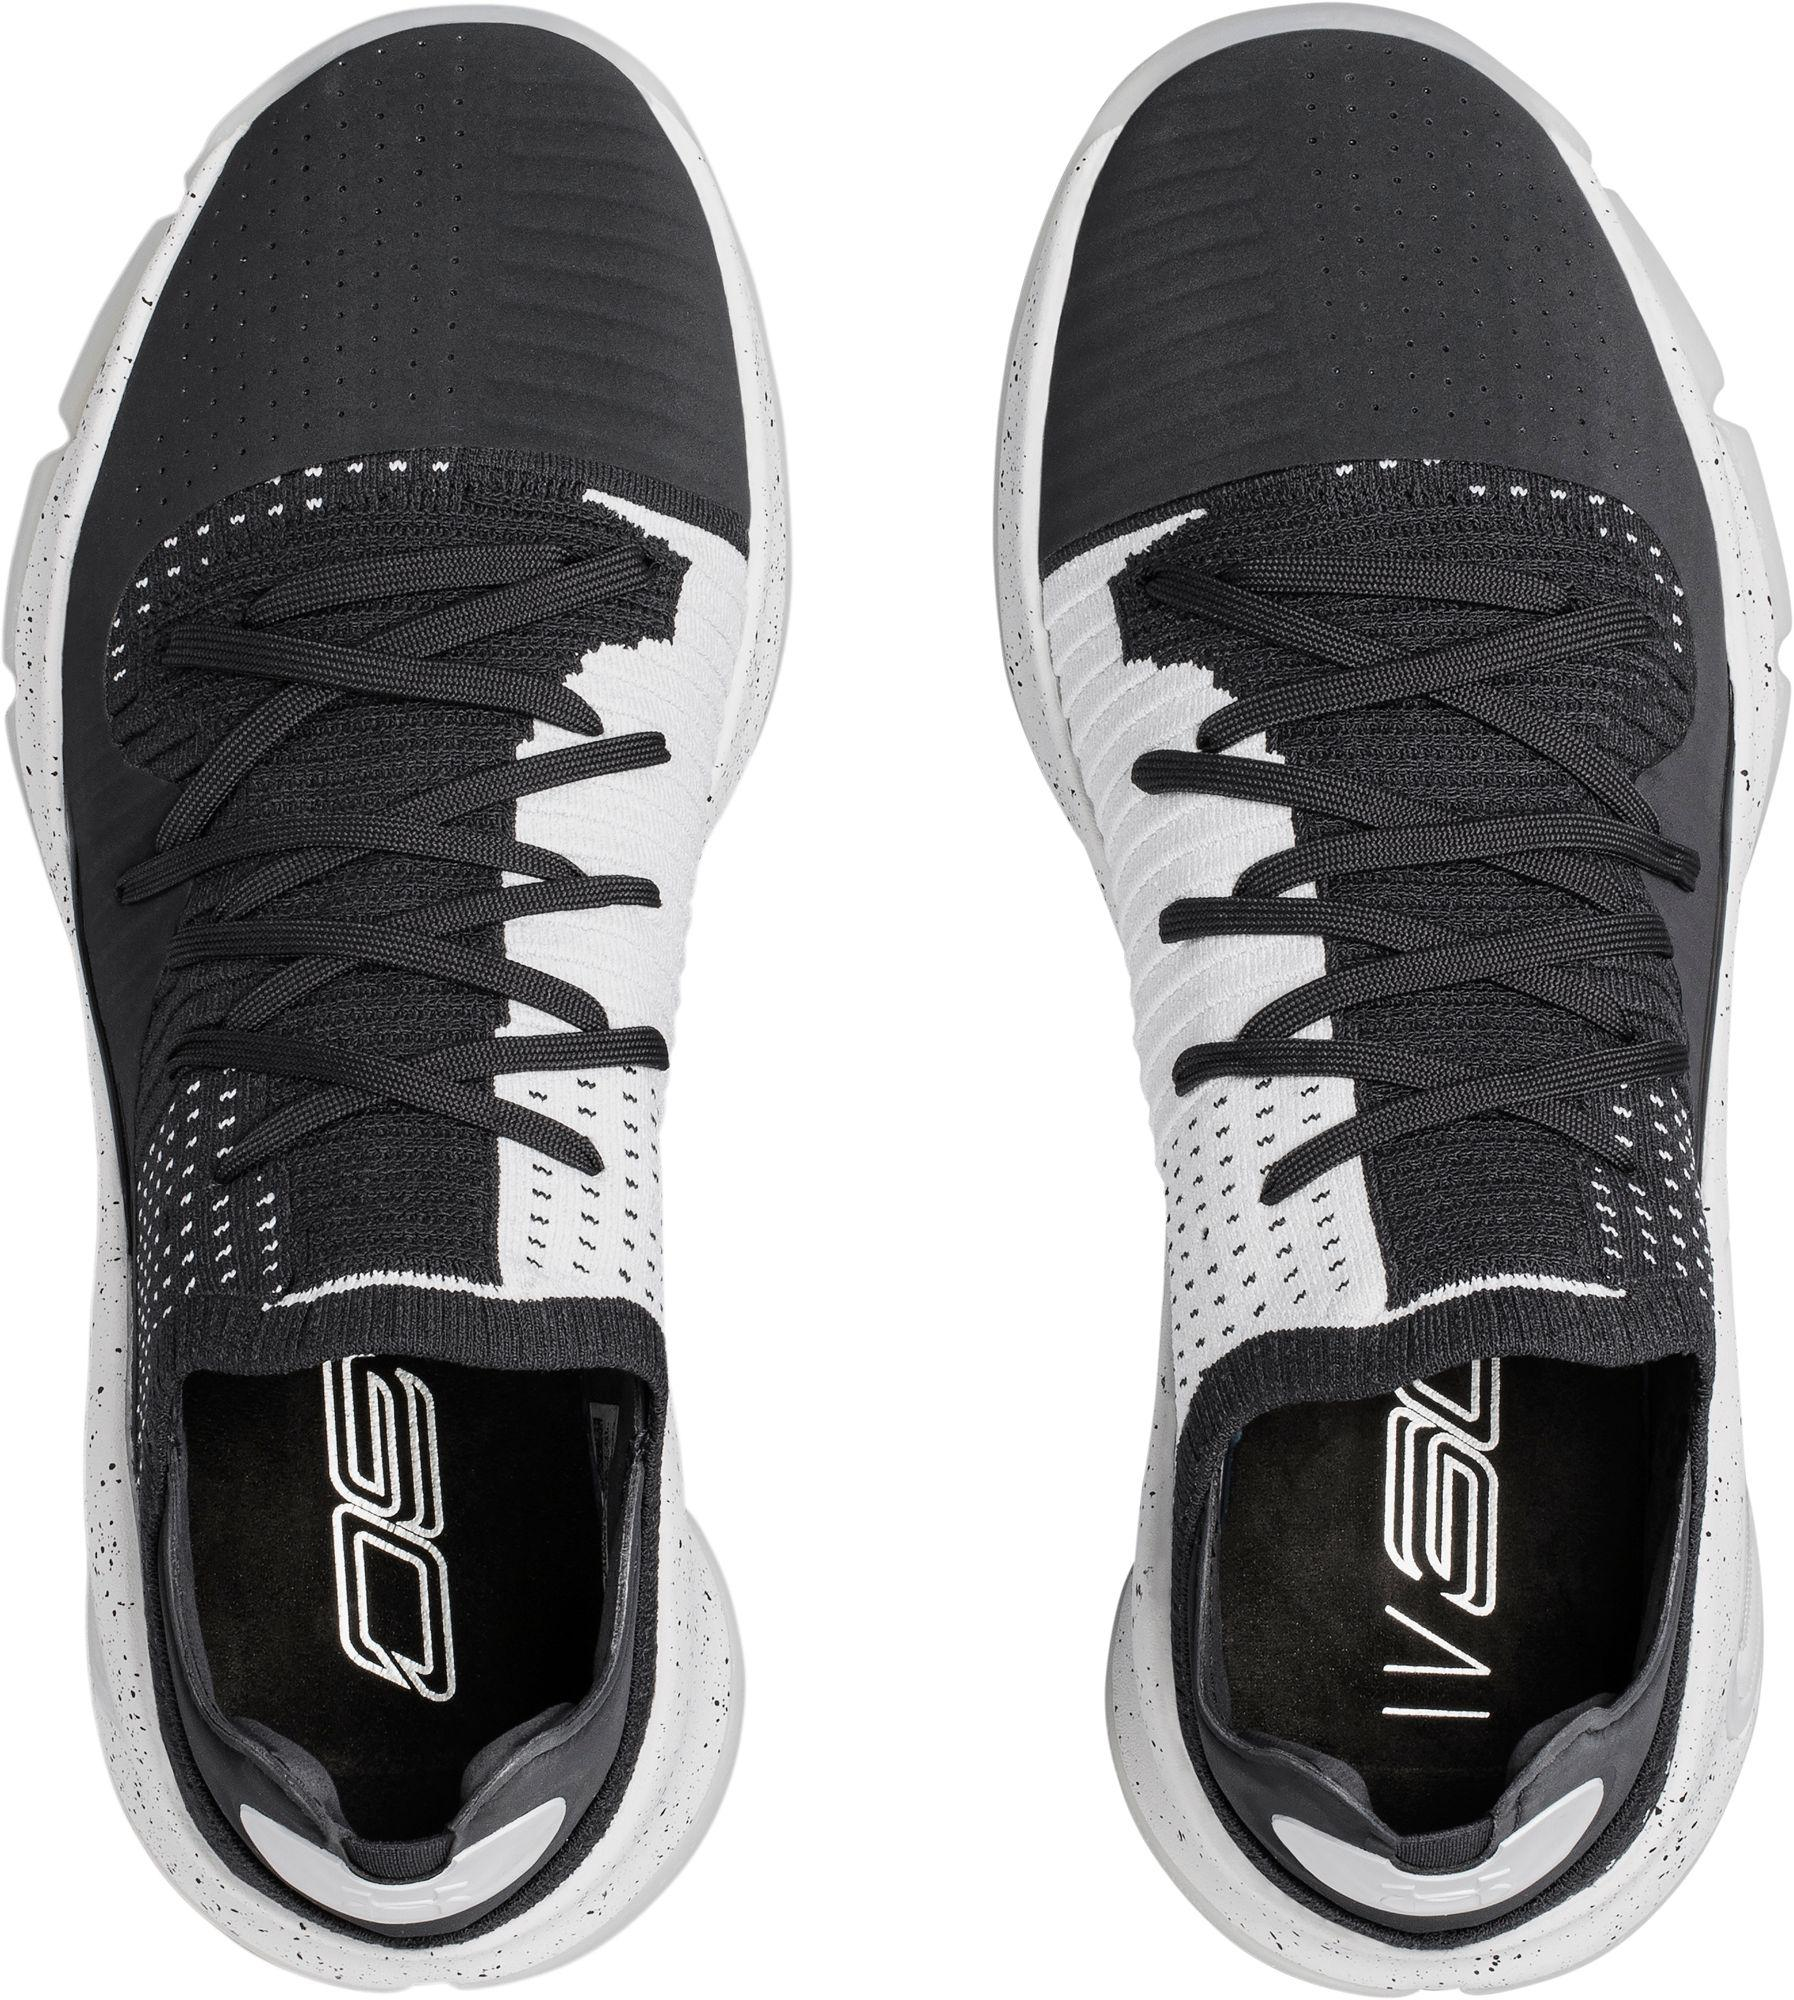 745787a4376 Under Armour Curry 4 Low Basketball Shoes in Gray for Men - Lyst